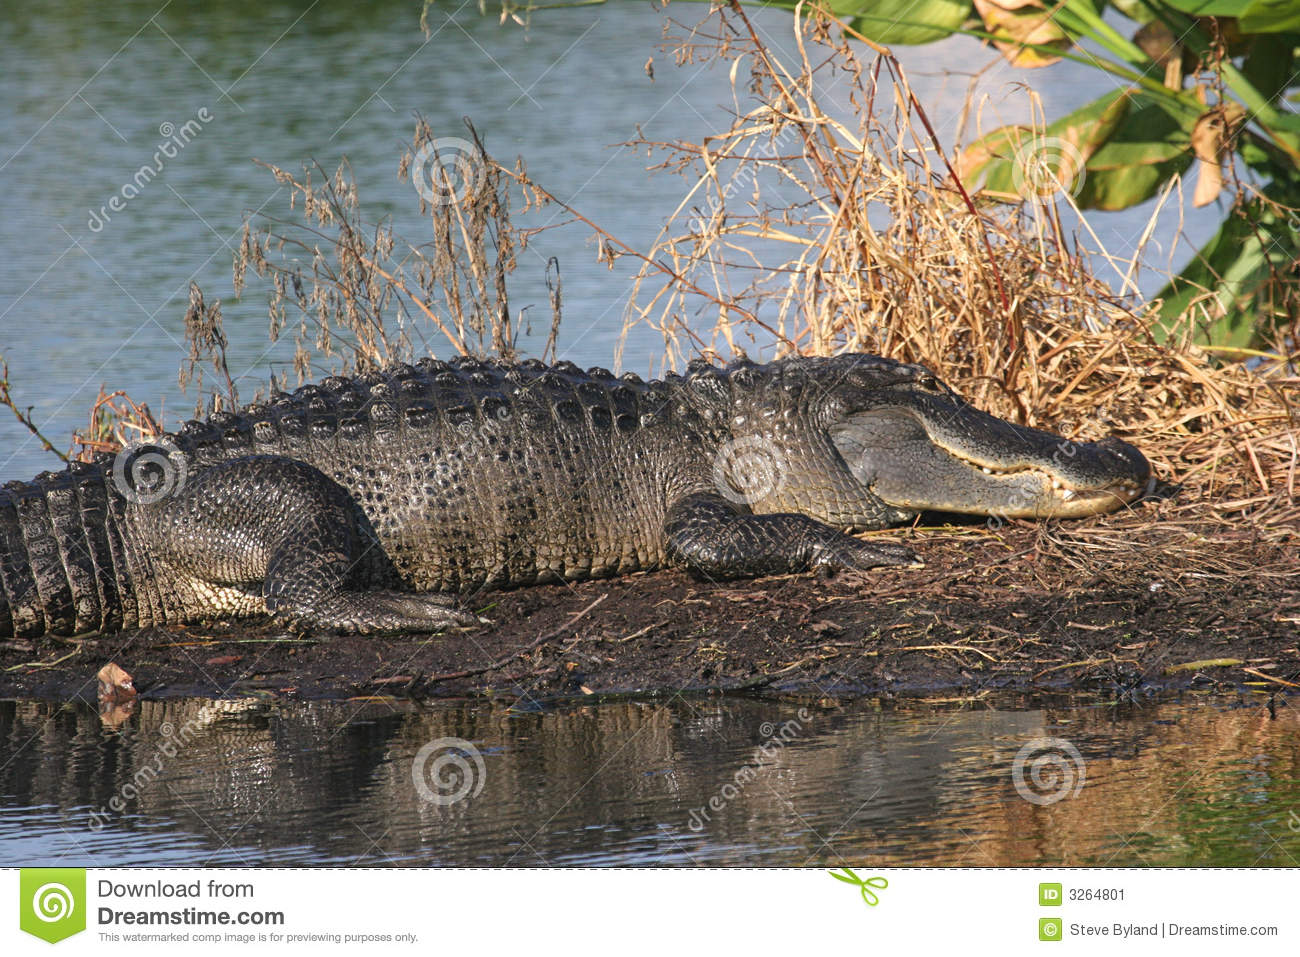 Alligator Florida Everglades Stock Image - Image: 3264801